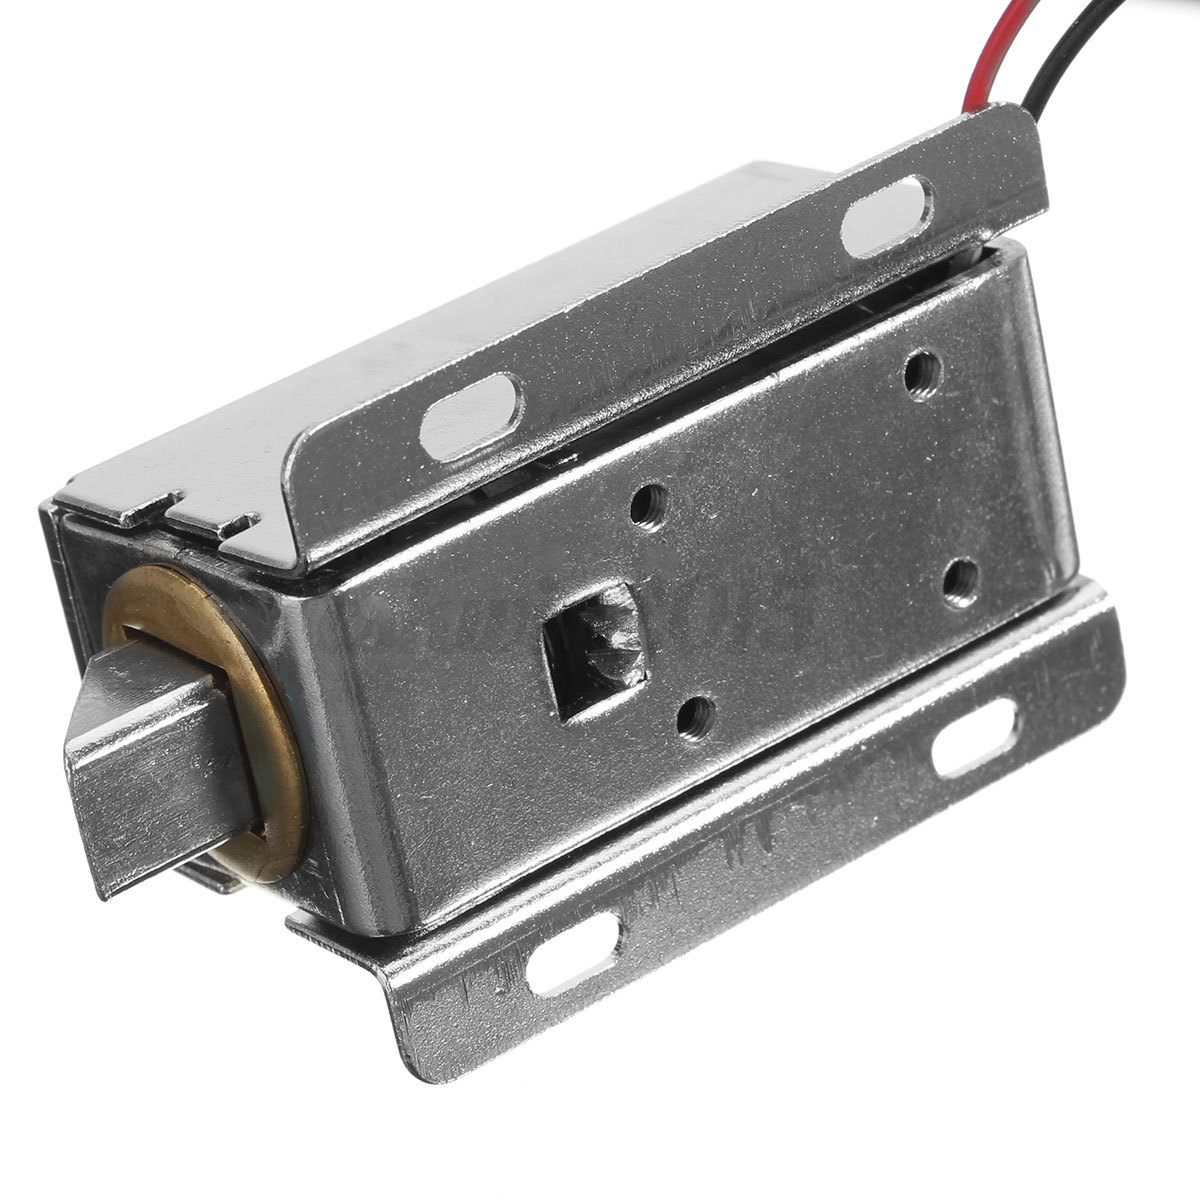 Dc 12v safe cabinet door electric lock assembly latch for 12v door latch